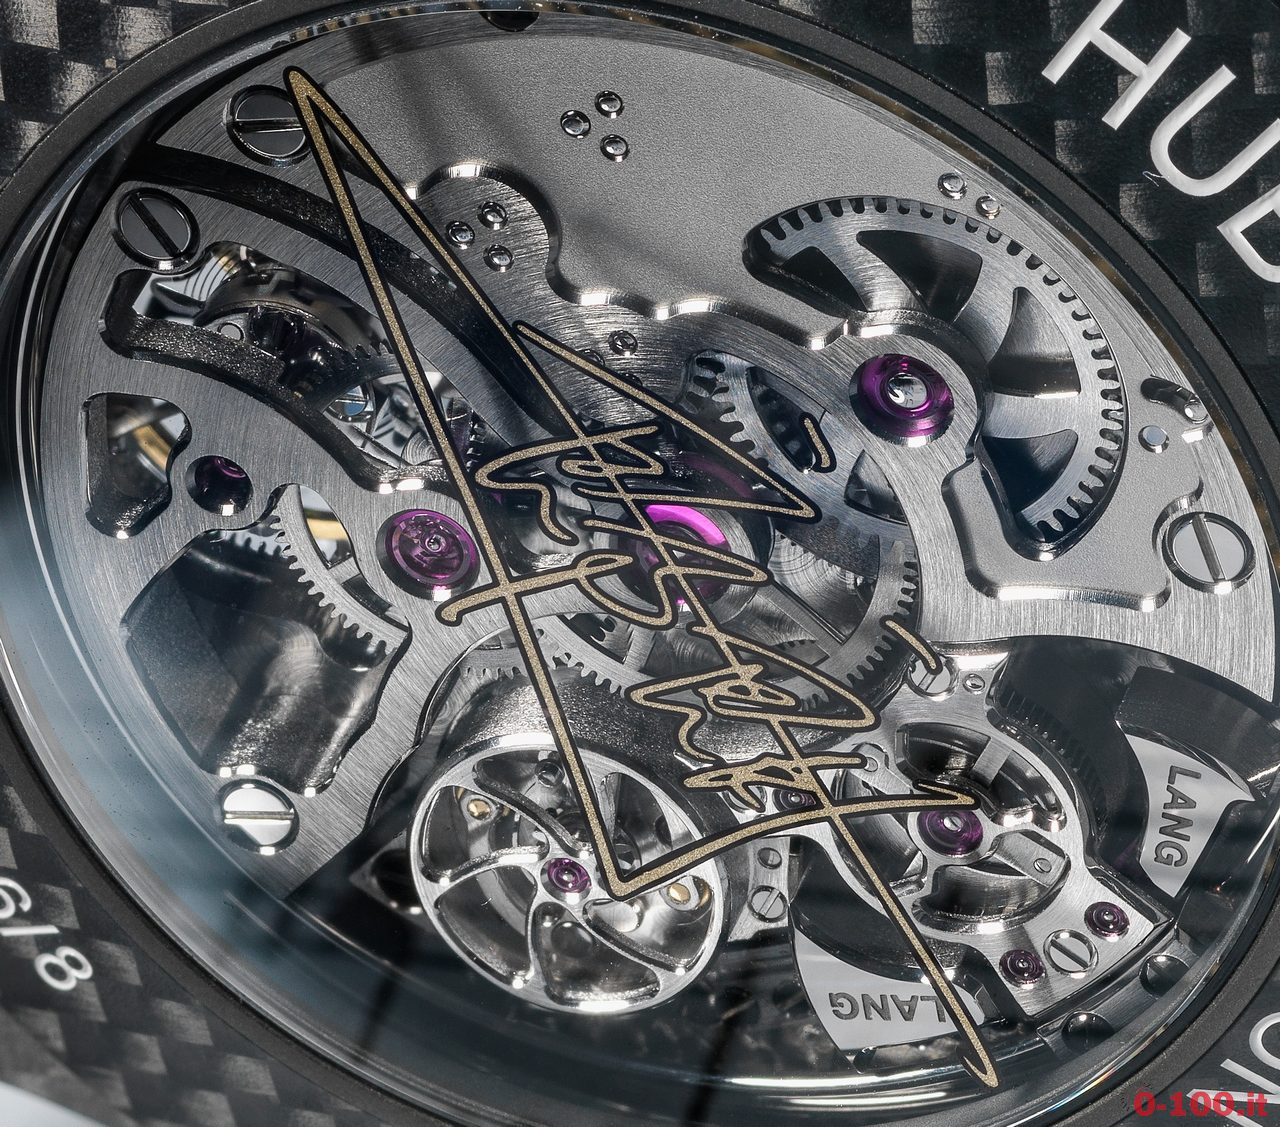 hublot-classic-fusion-tourbillon-cathedral-minute-repeater-carbon-lang-lang-limited-edition-ref-504-qx-0180-vr-lal16-prezzo-price_0-10012